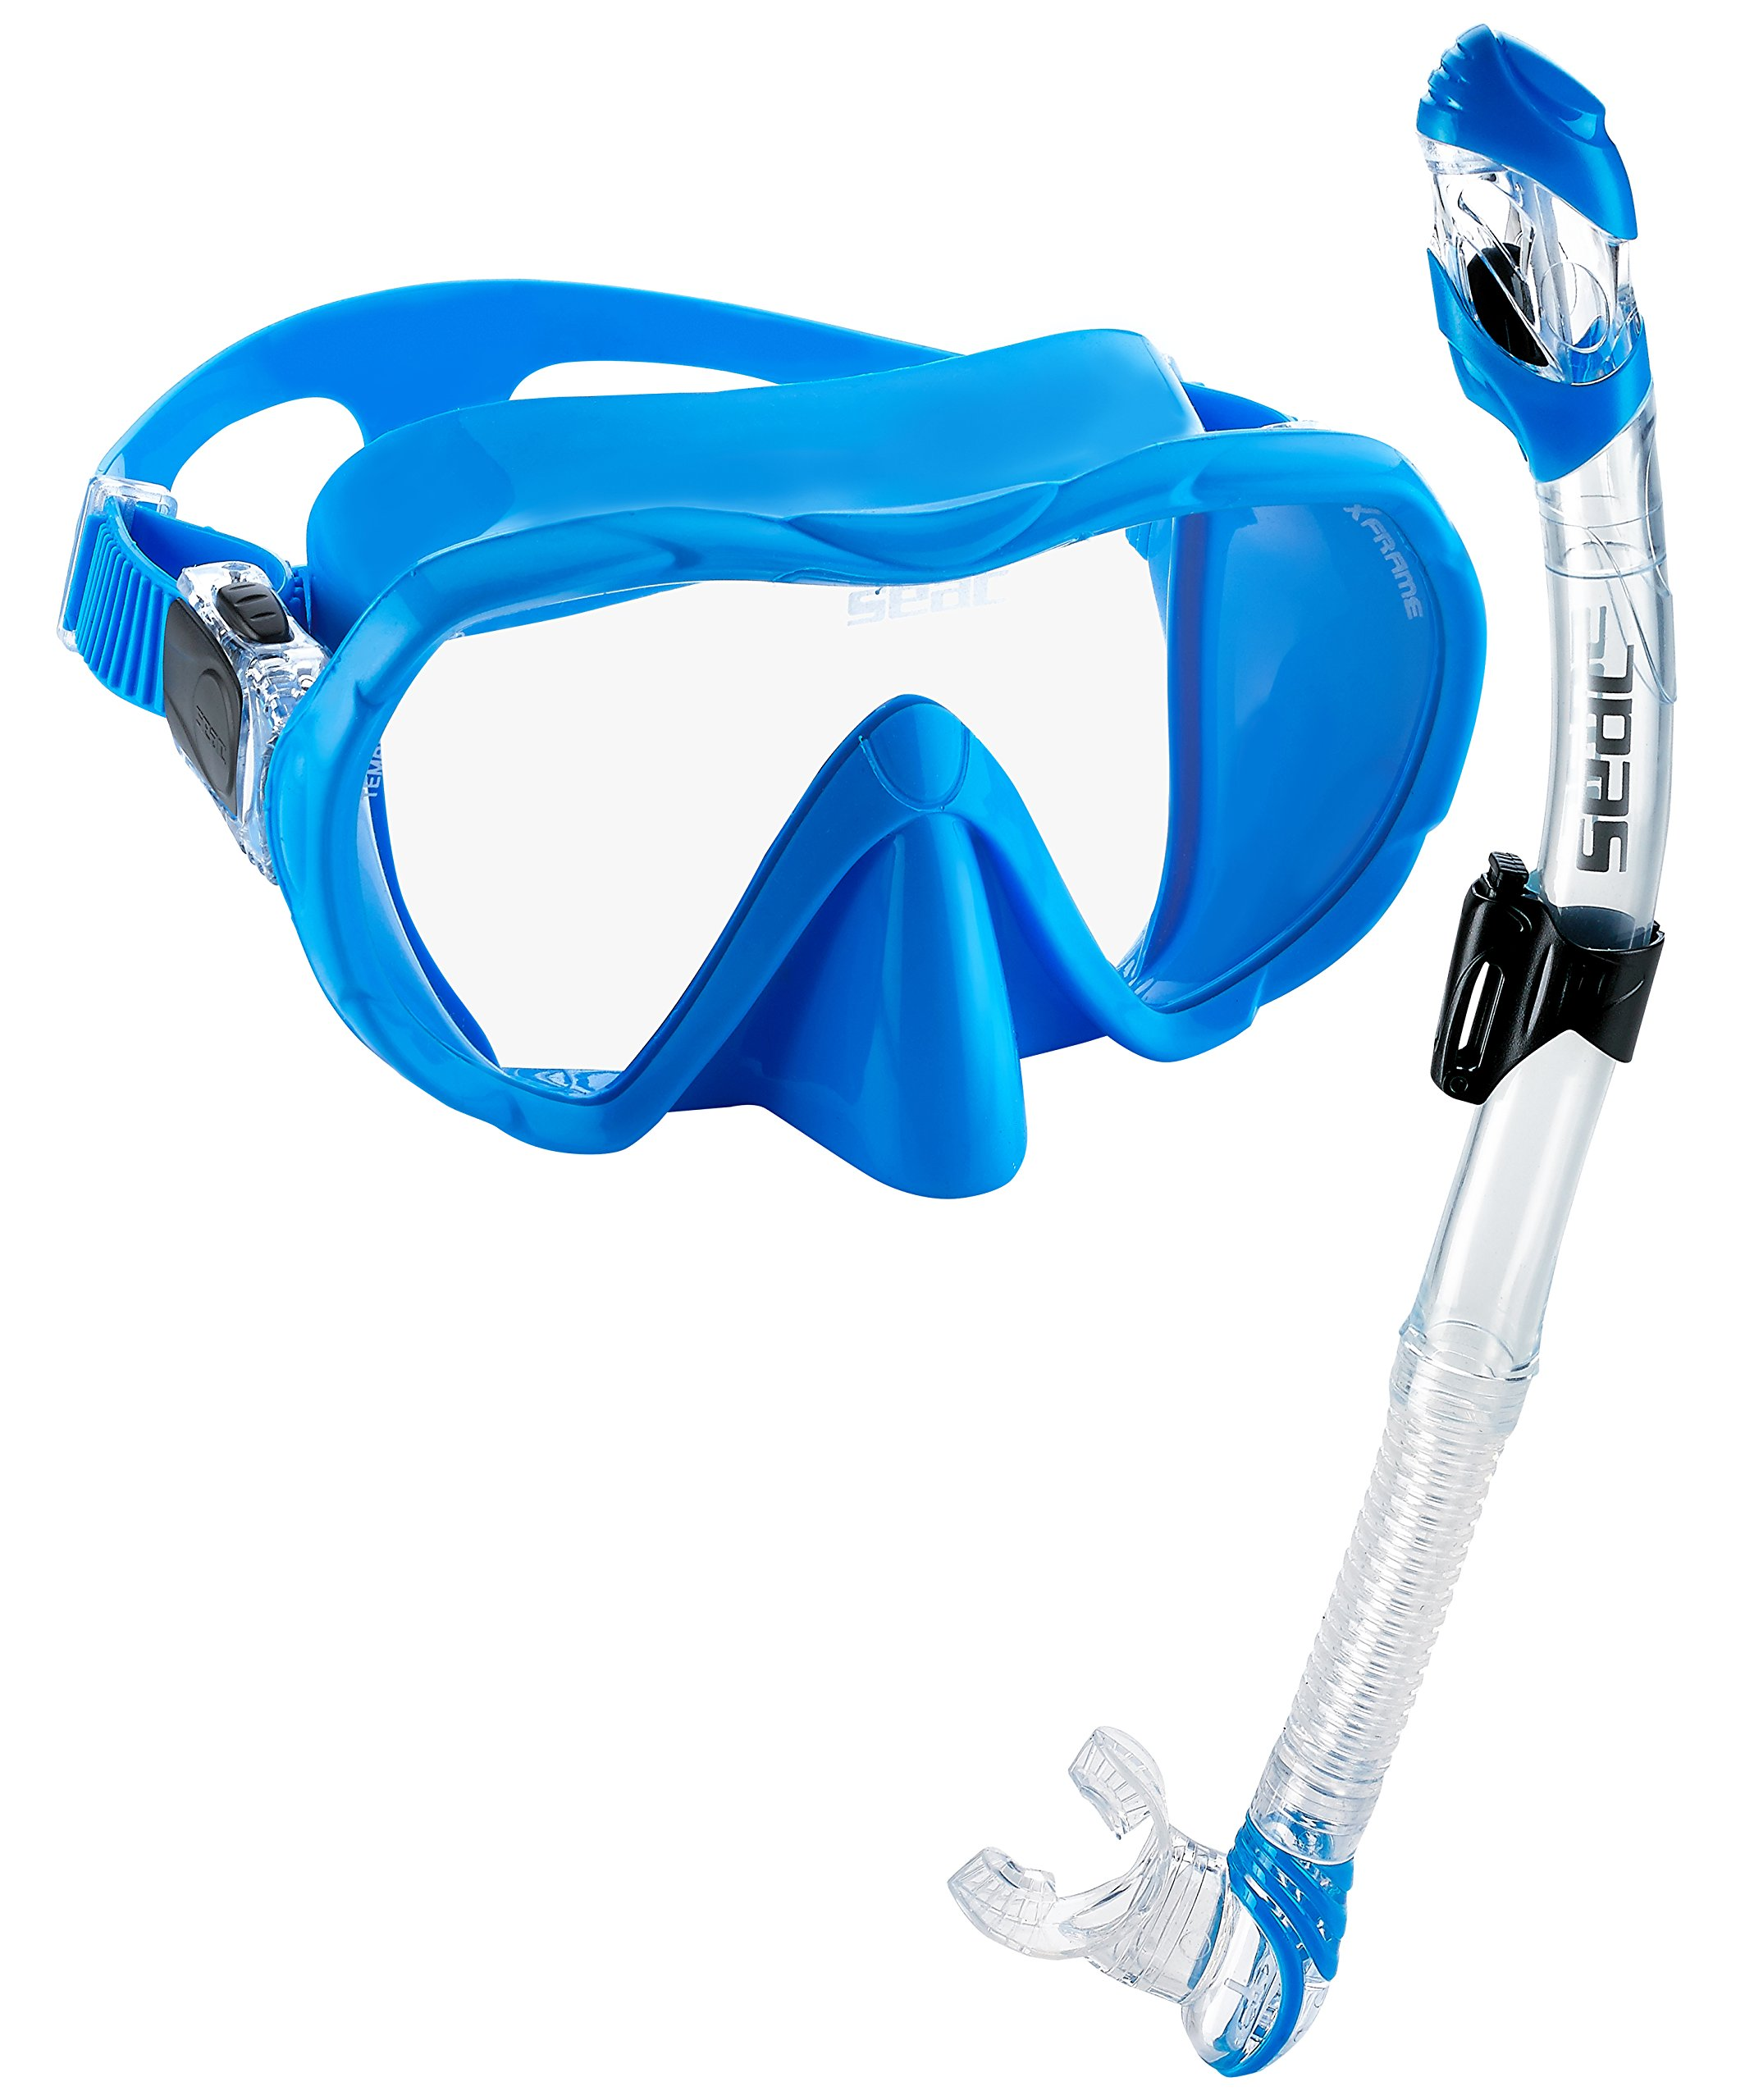 SEAC Frameless Scuba Mask Fin Snorkel Set, Blue, Small/Medium by SEAC (Image #2)